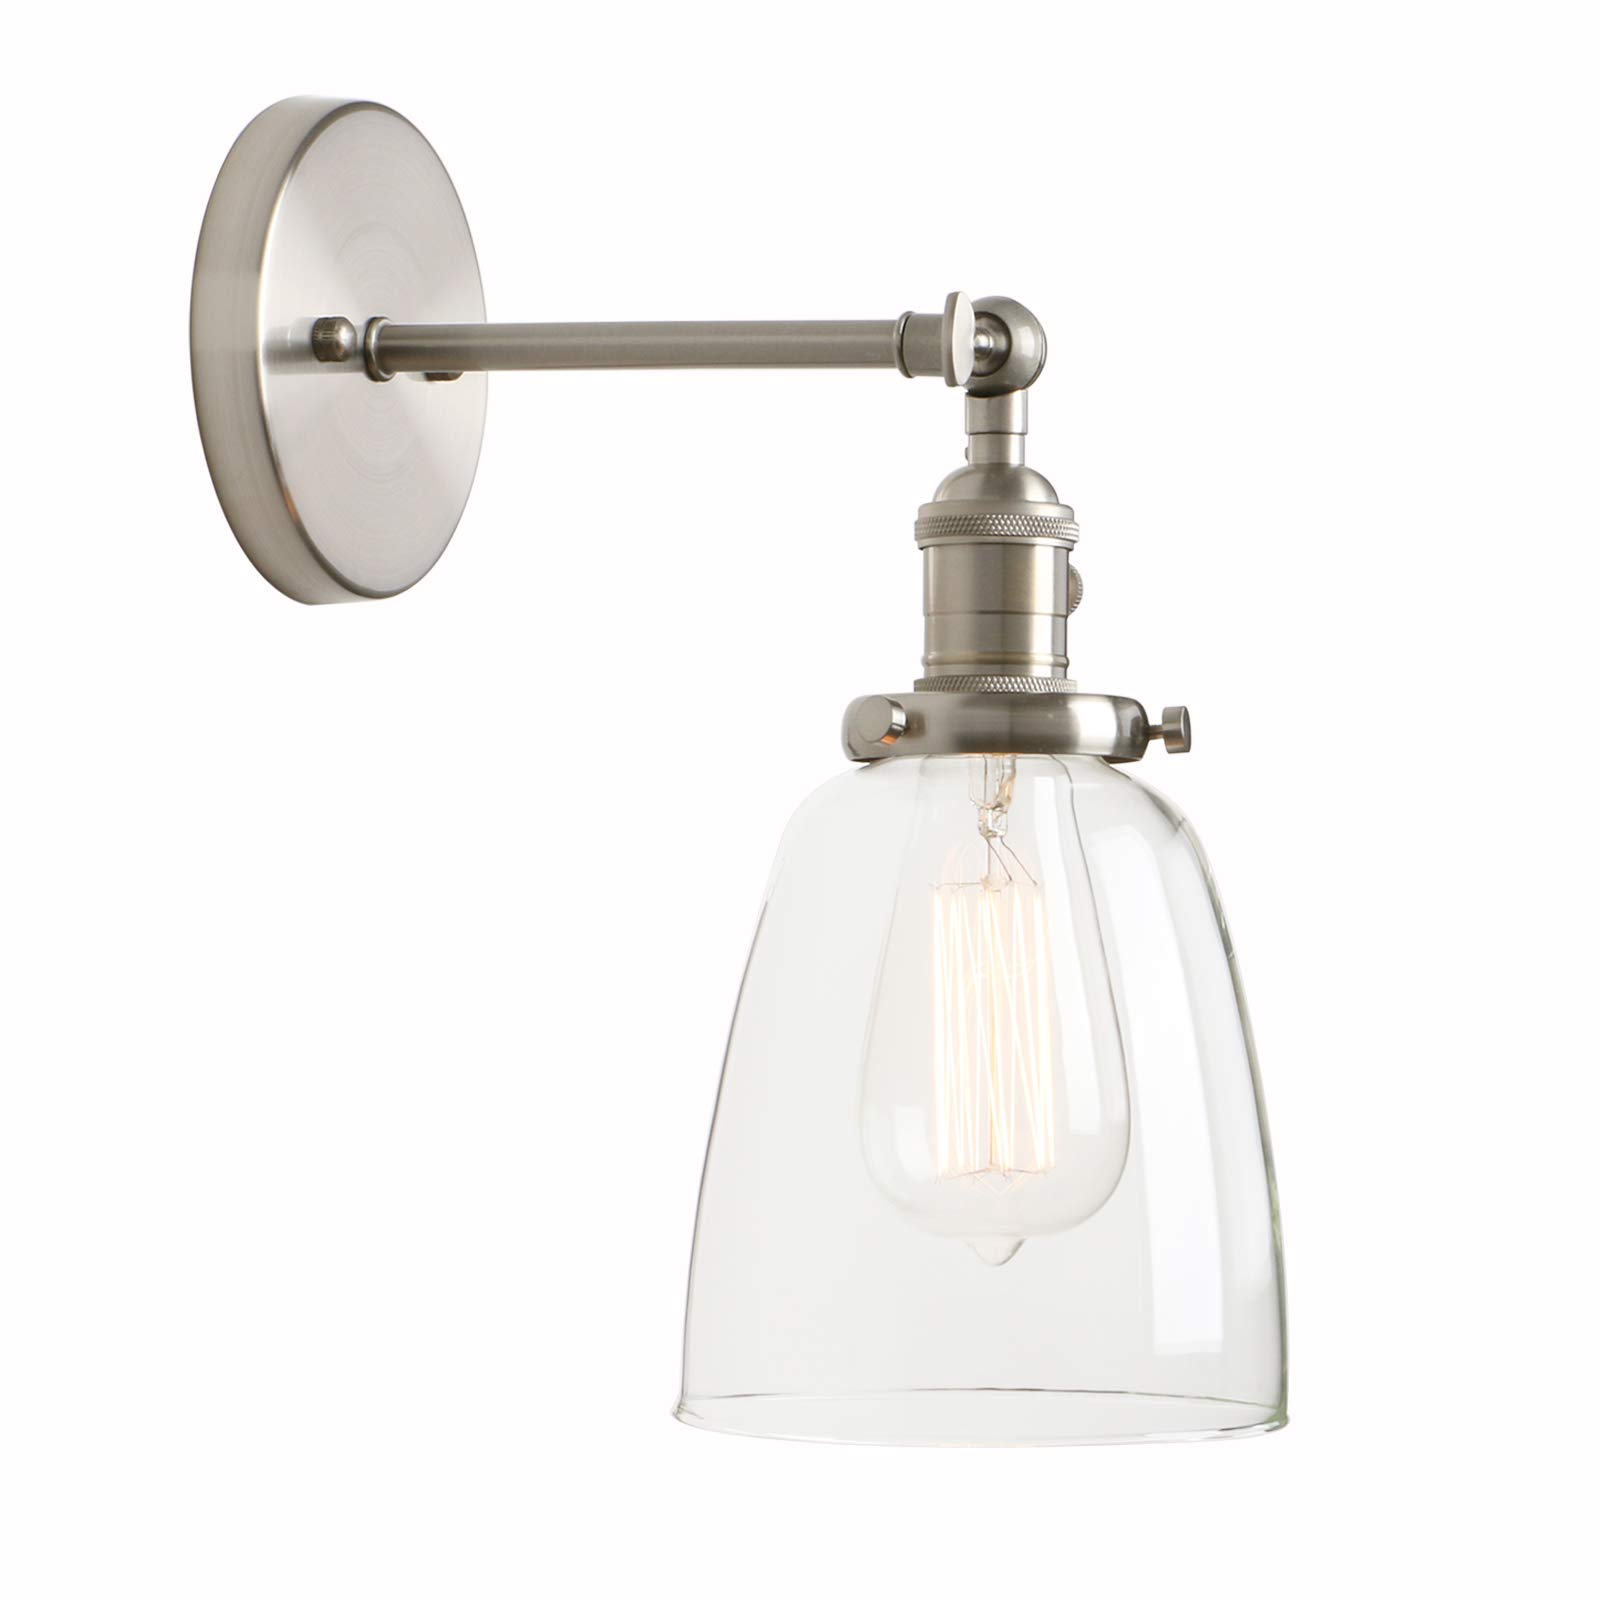 Permo Industrial Vintage Single Sconce With Oval Cone Clear Glass Shade 1-light Wall Sconce Wall Lamp (Brushed) by Permo (Image #1)